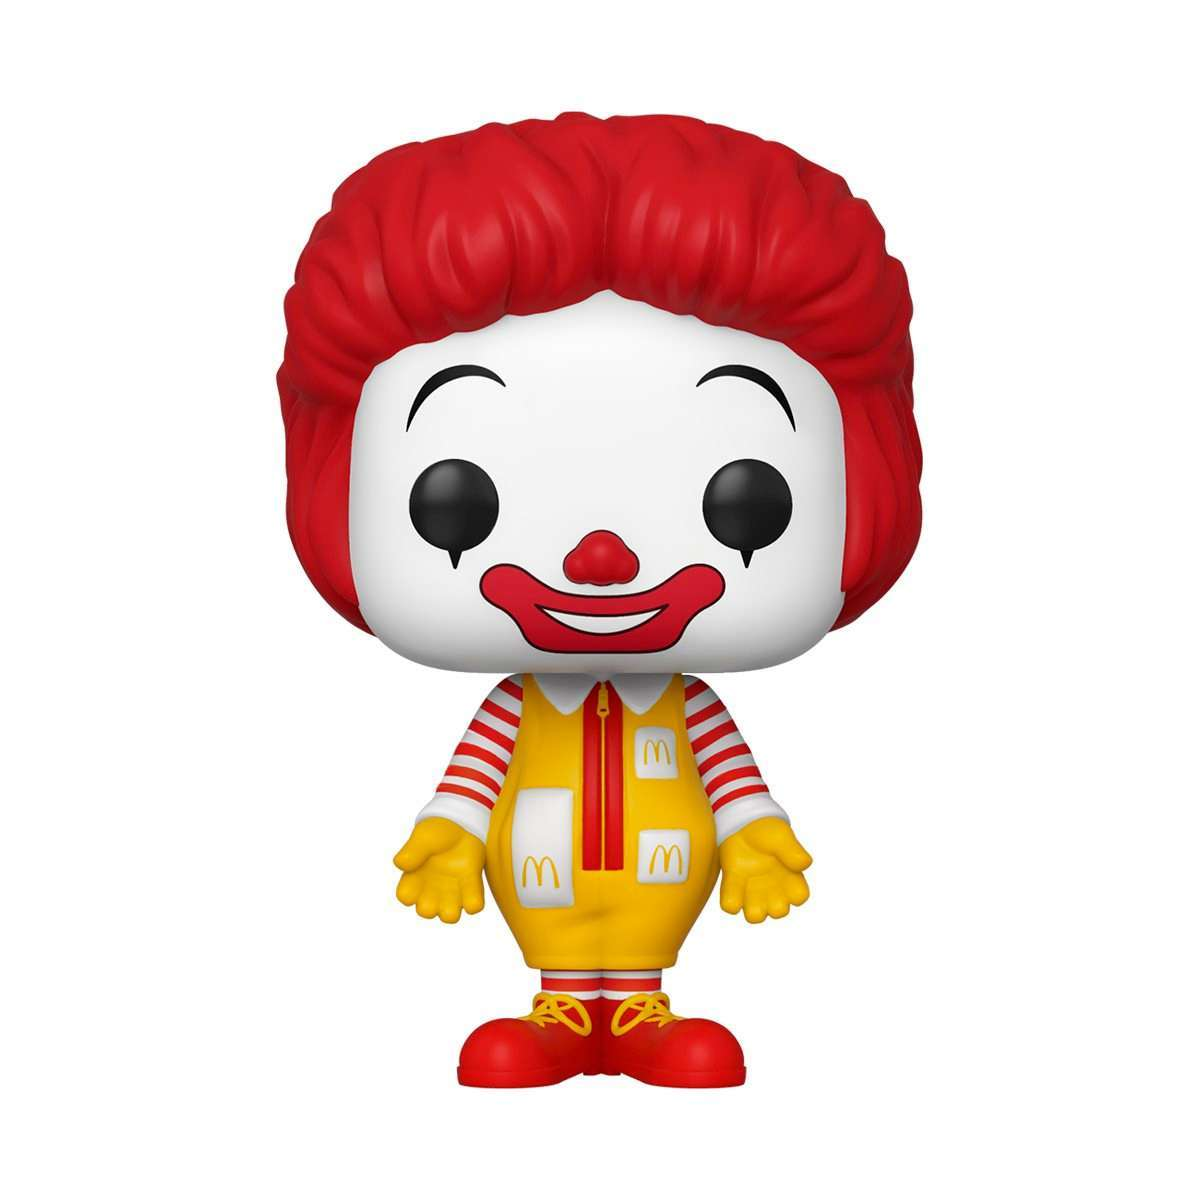 Mcdonald S Mascots Funko Pops Are Approved By Mayor Mccheese Mayor mccheese has a burger for a head, with the burger between 2 buns, the top bun having 2 eyes, aswell as wearing a top hat. mcdonald s mascots funko pops are